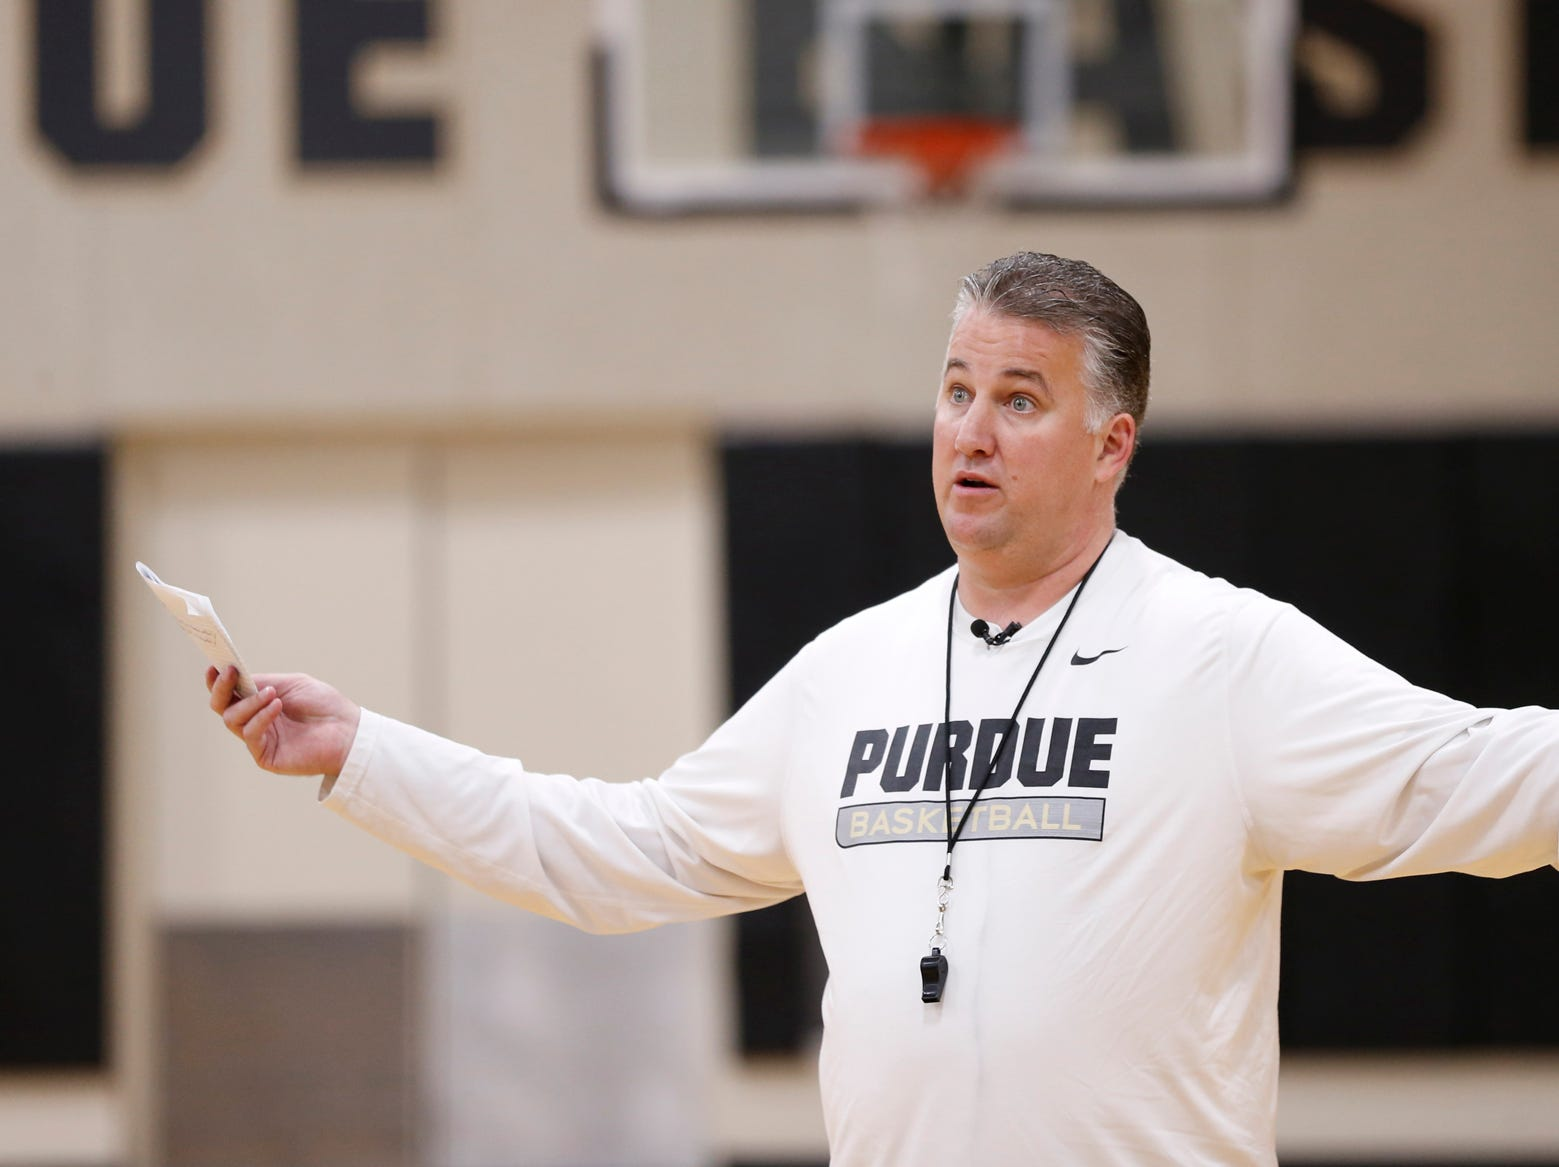 Head coach Matt Painter gives instructions to his players at the start of the first official practice of the season for Purdue men's basketball Tuesday, September 25, 2018, at Cardinal Court in Mackey Arena.